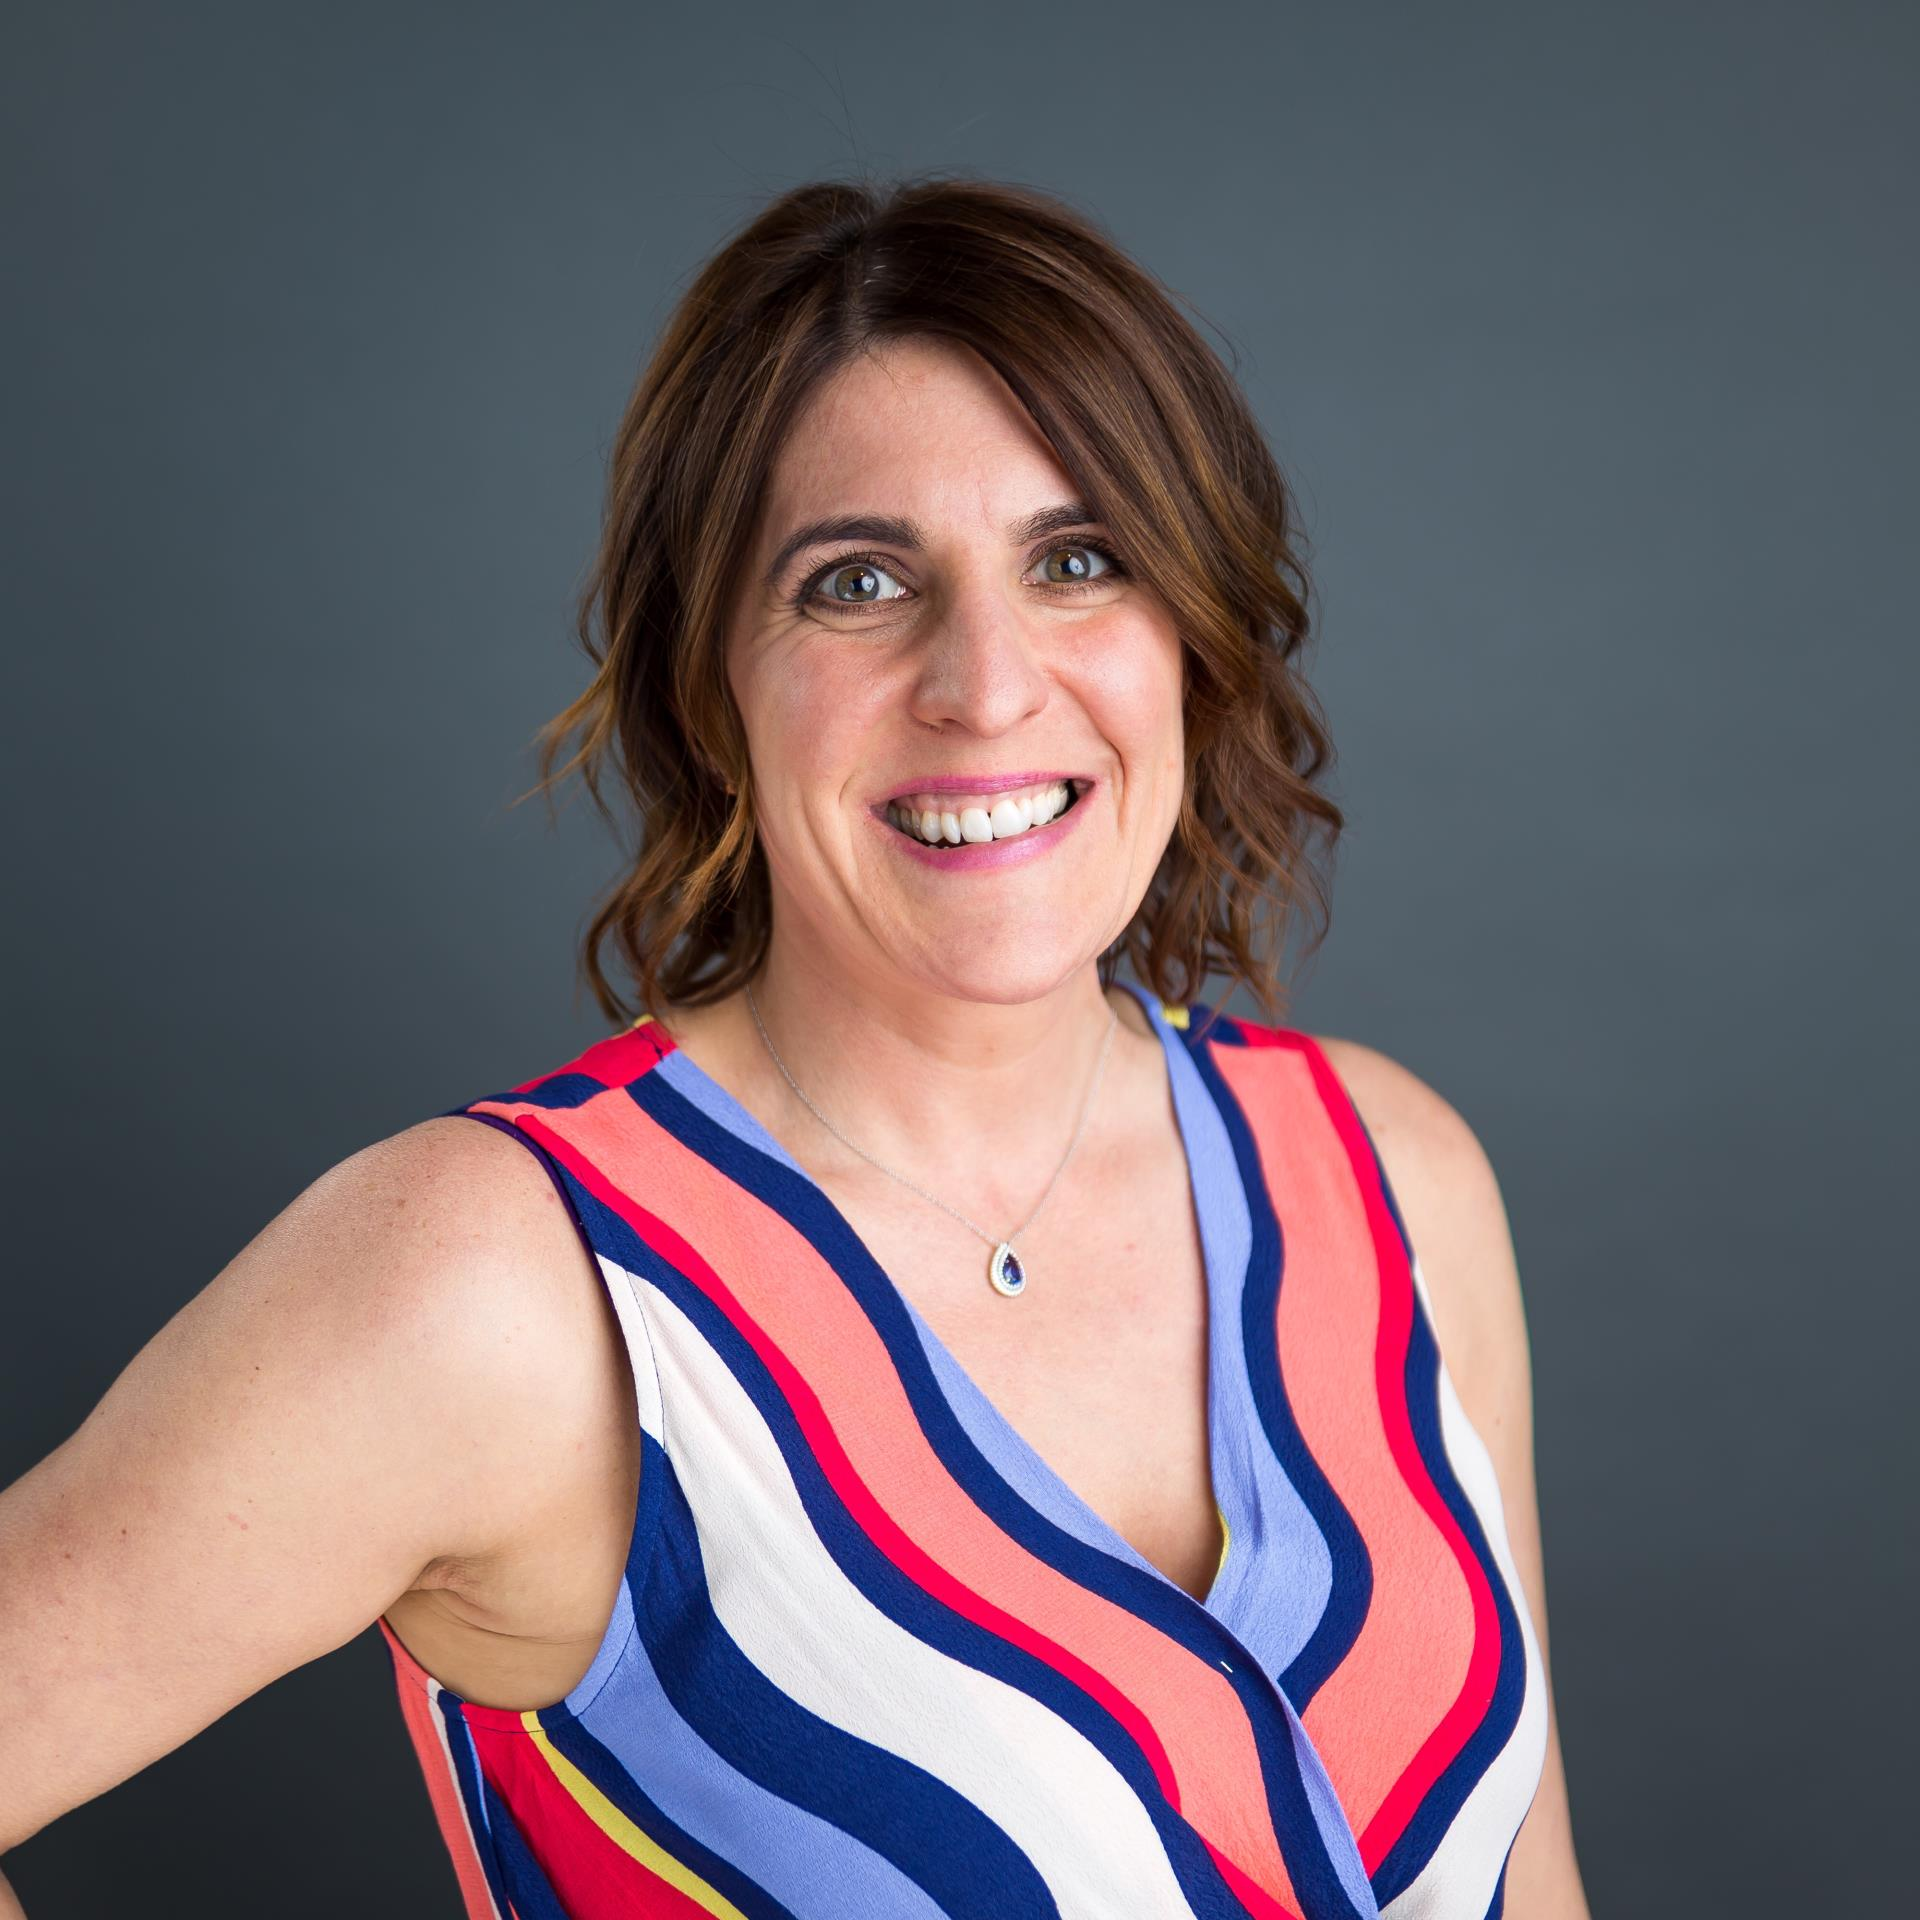 Member Monday: Diana Zic, RPYT and CHC, Specializing in Fertility Health